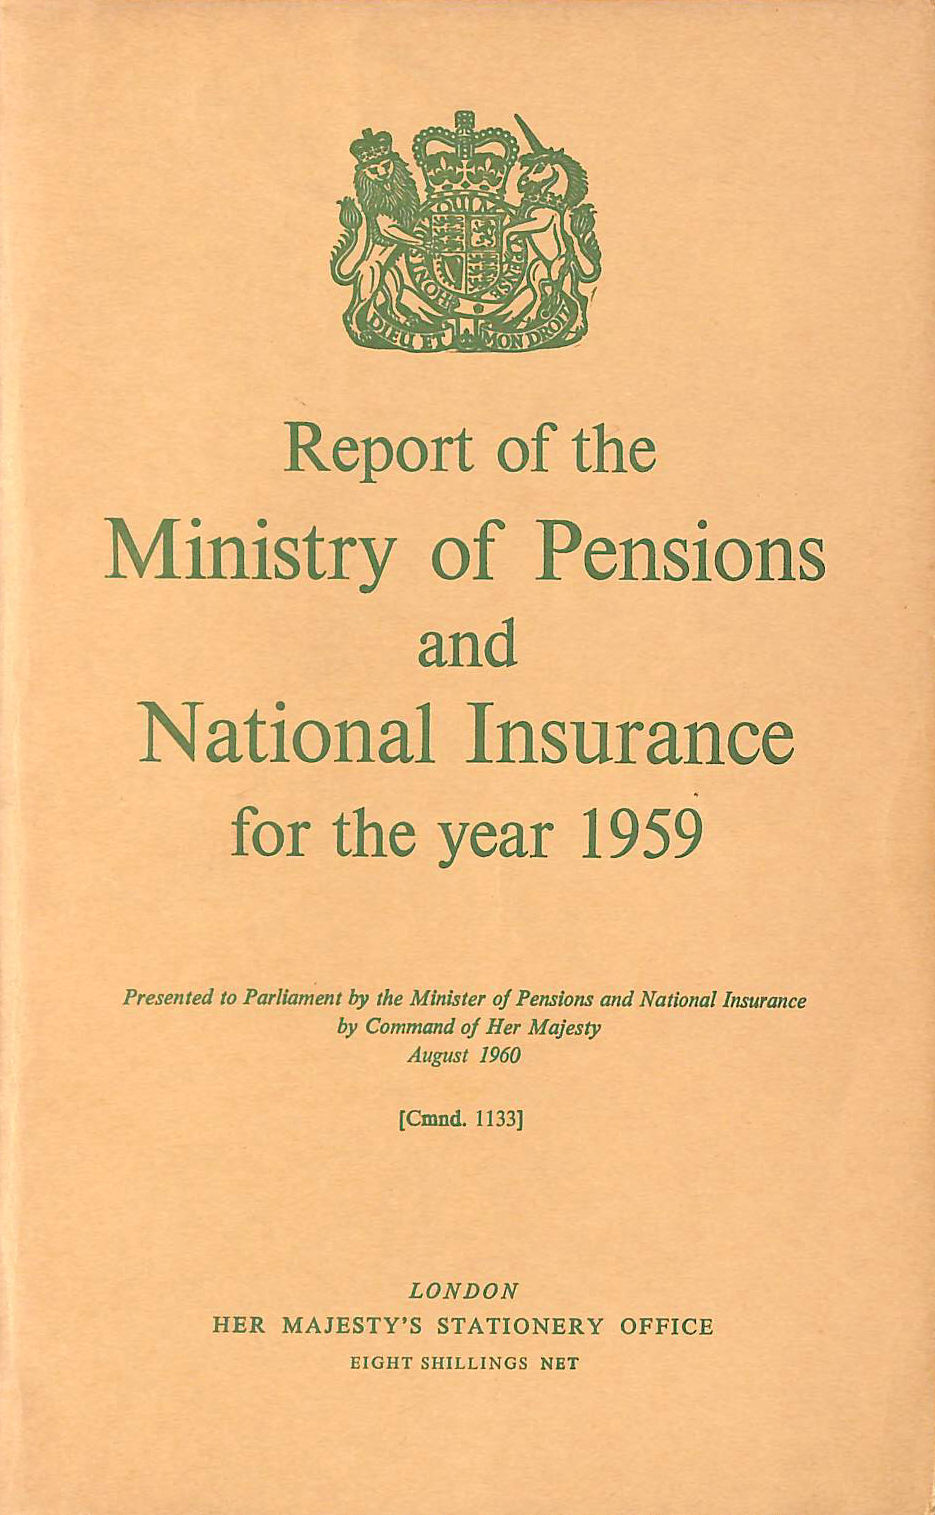 Image for Report of the Ministry of Pensions and National Insurance 1959